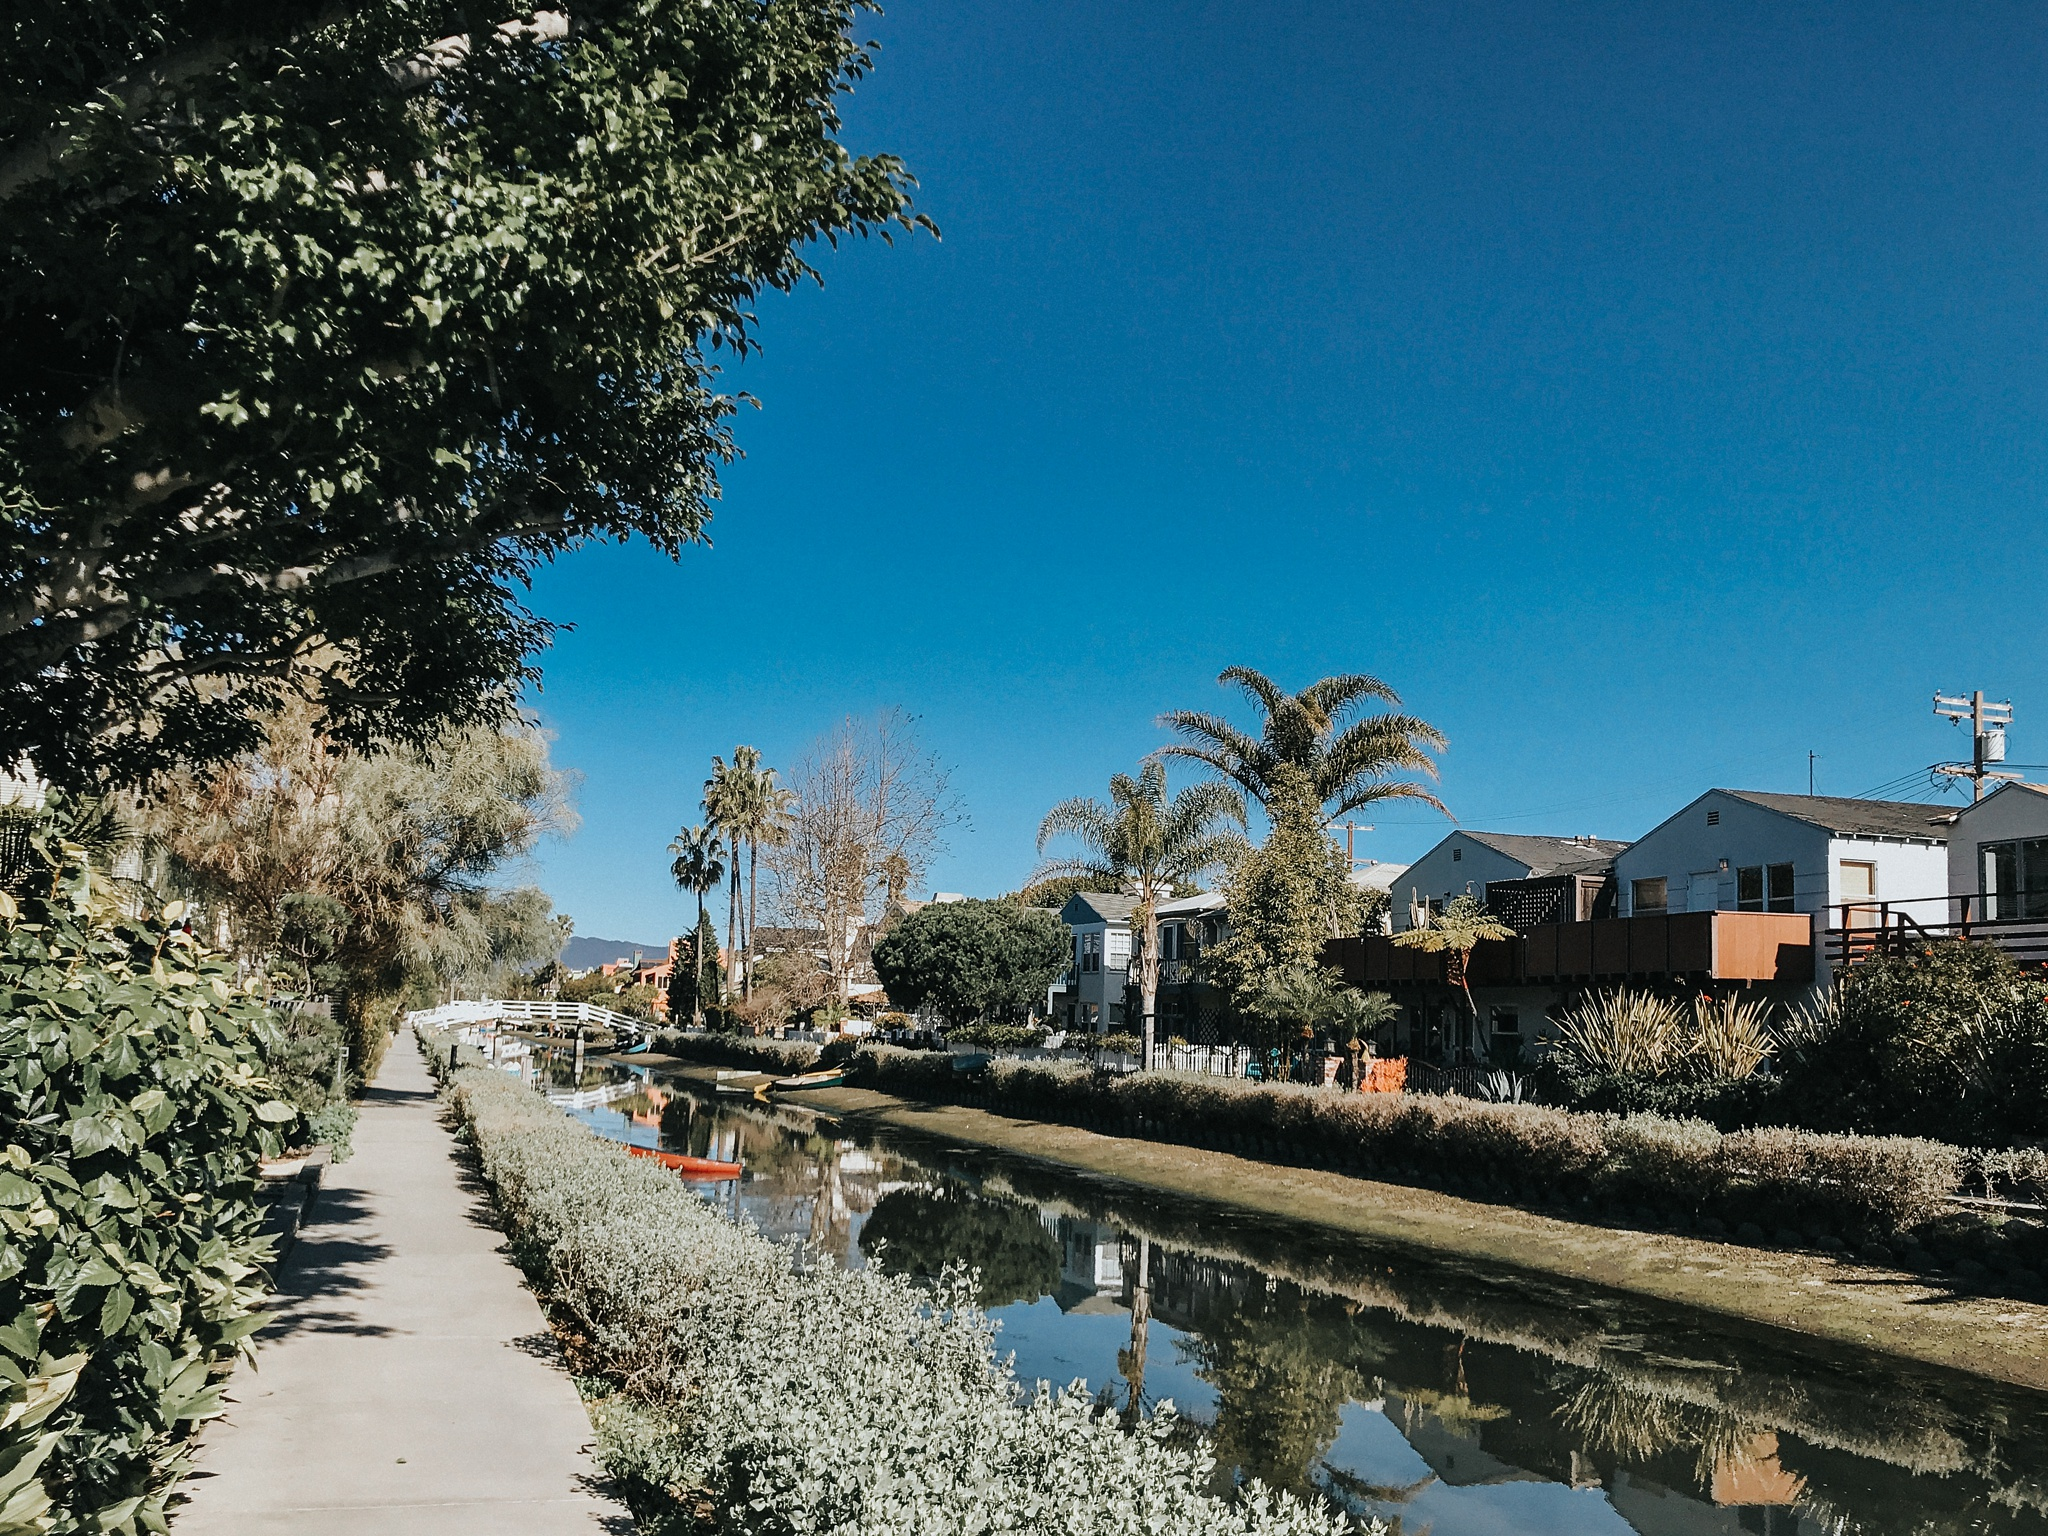 The canals were so pretty - even if it was a little more like a swap than a canal :/